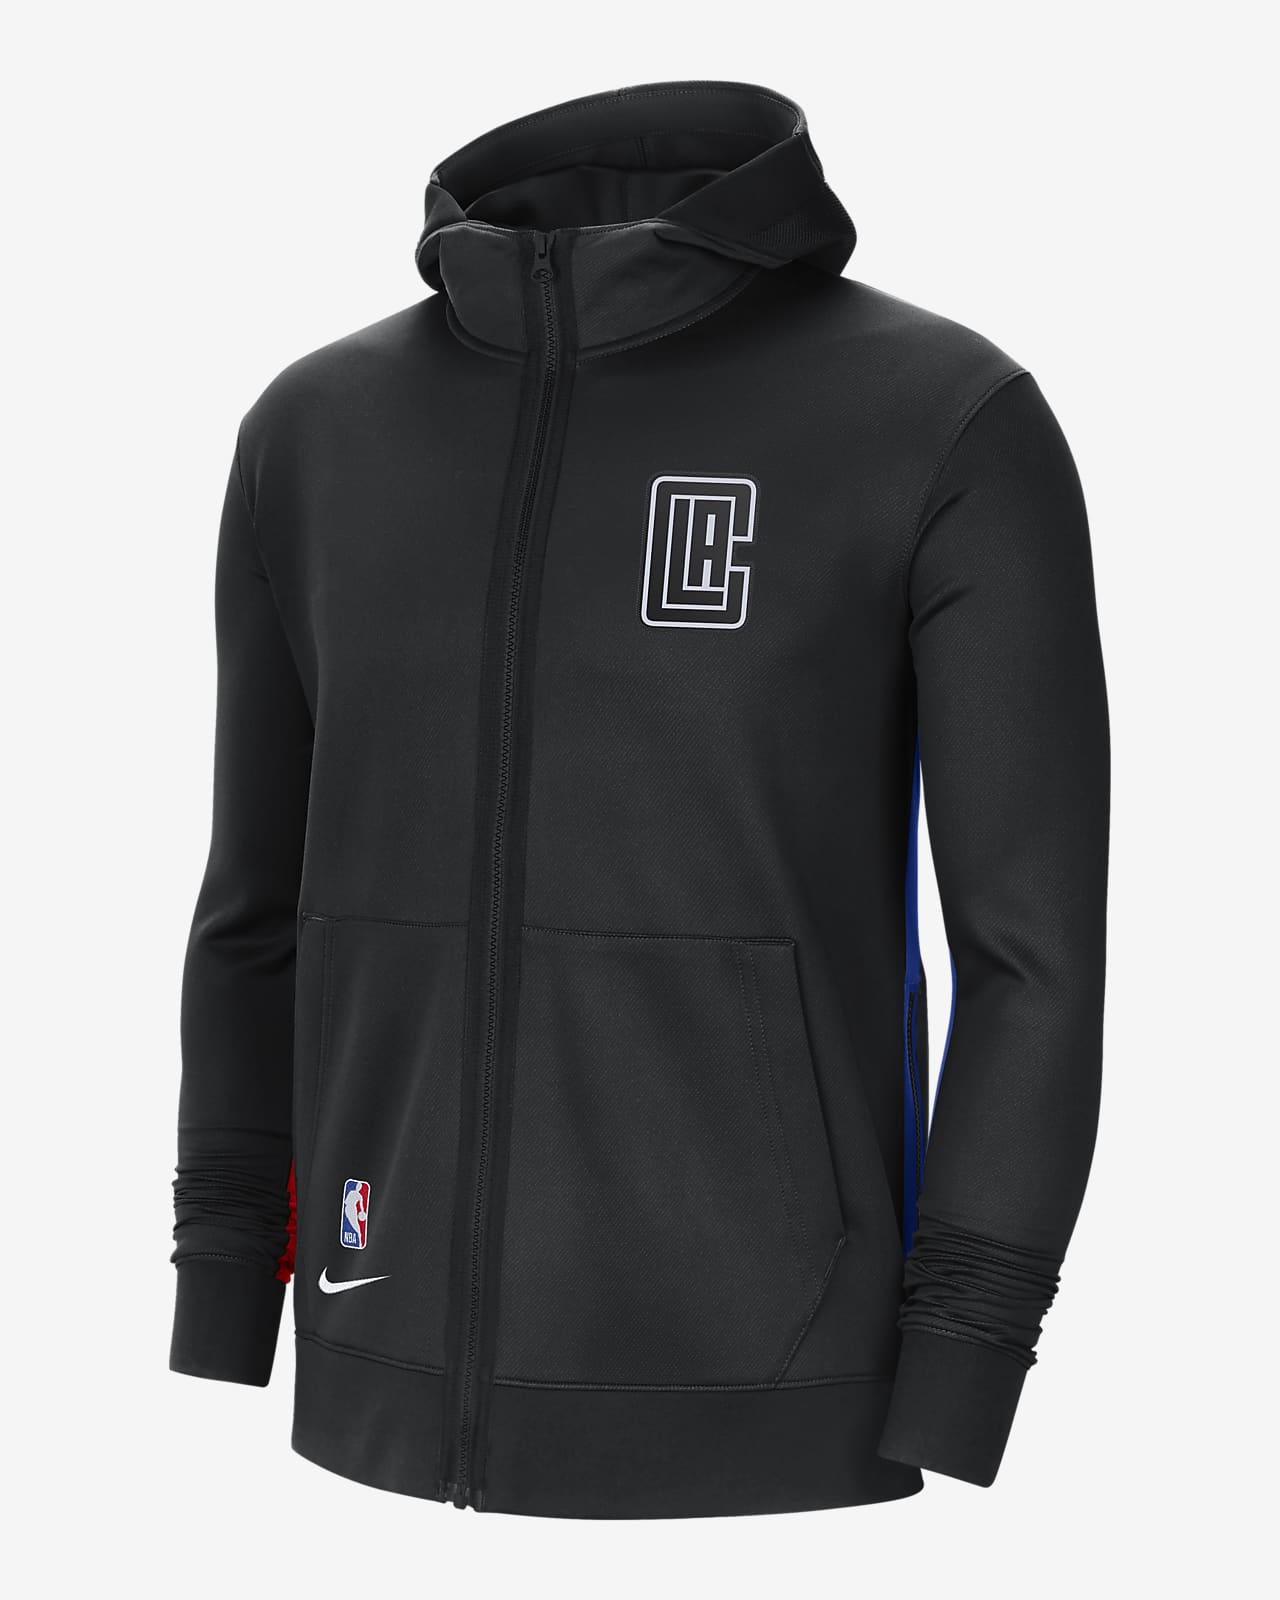 LA Clippers Showtime City Edition Men's Nike Therma Flex NBA Hoodie